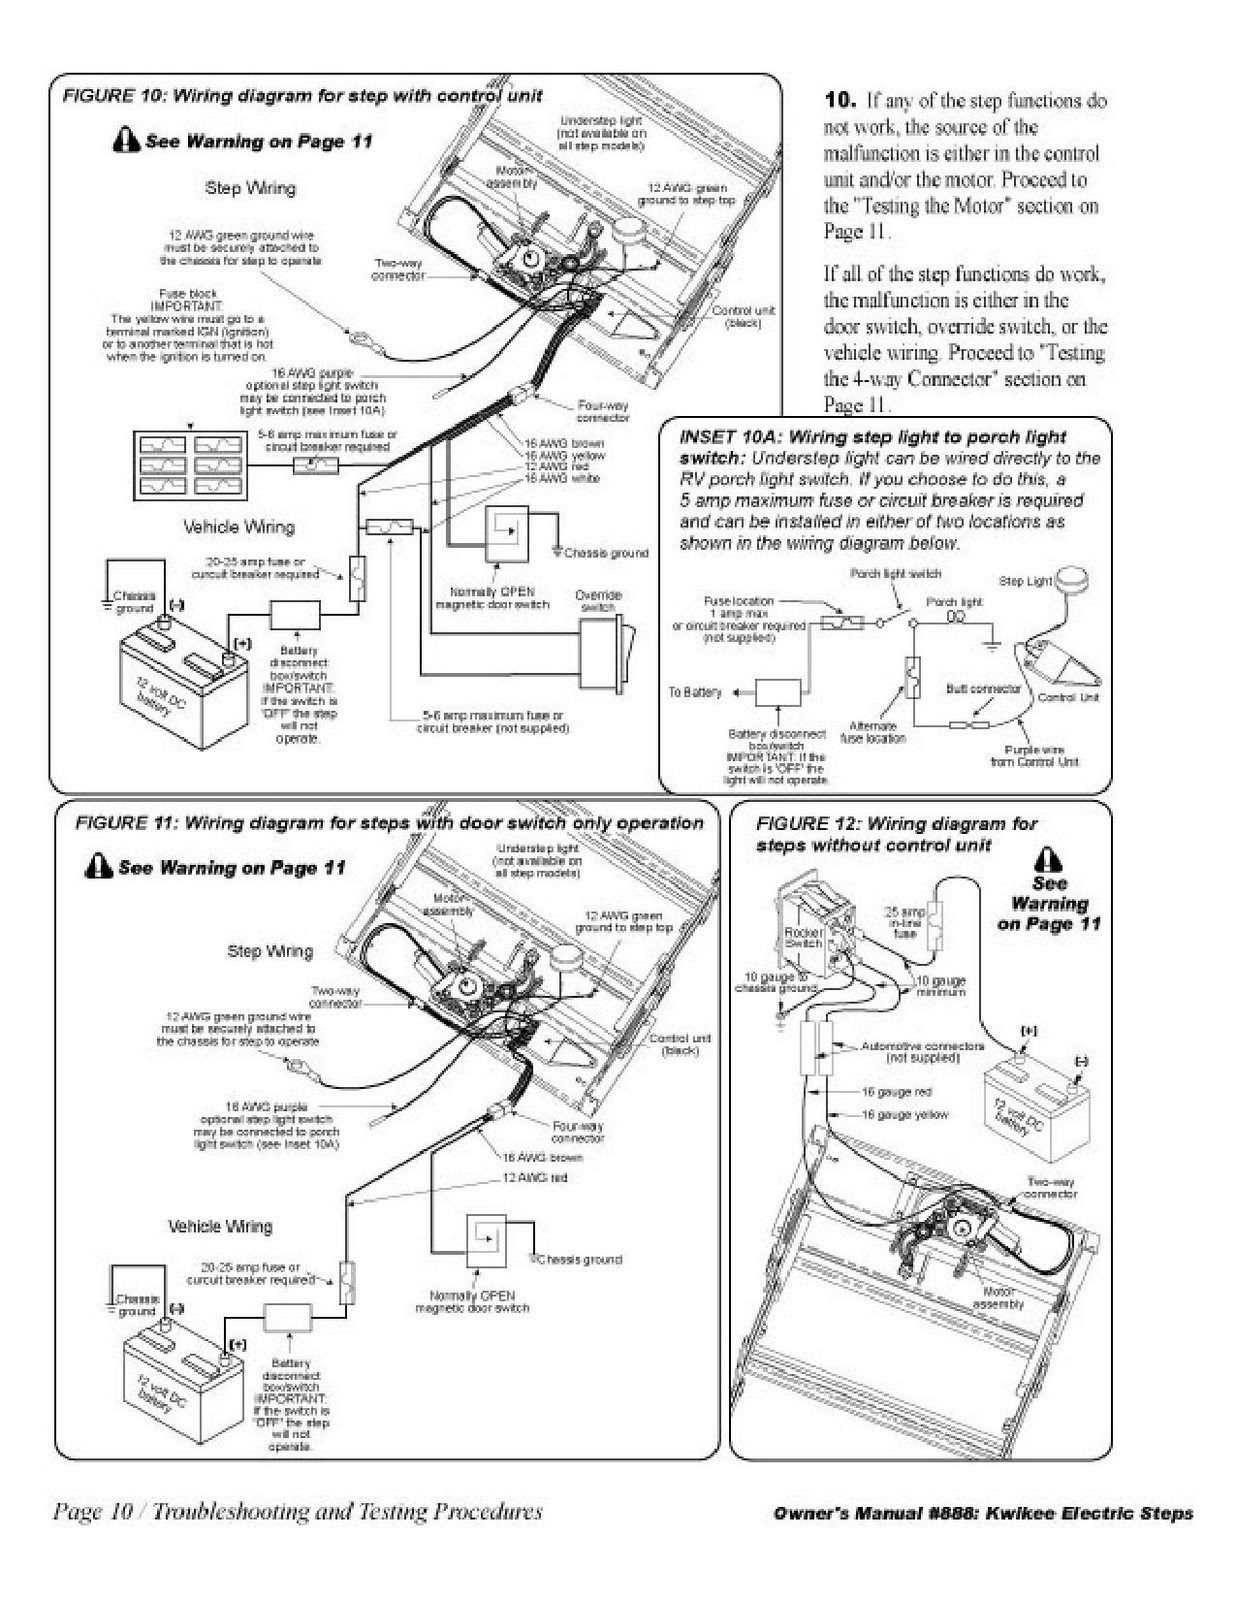 kwikee electric step wiring diagram Download-kwikee steps wiring diagram circuit connection diagram u2022 rh scooplocal co Kwikee Electric Step Model 1-o